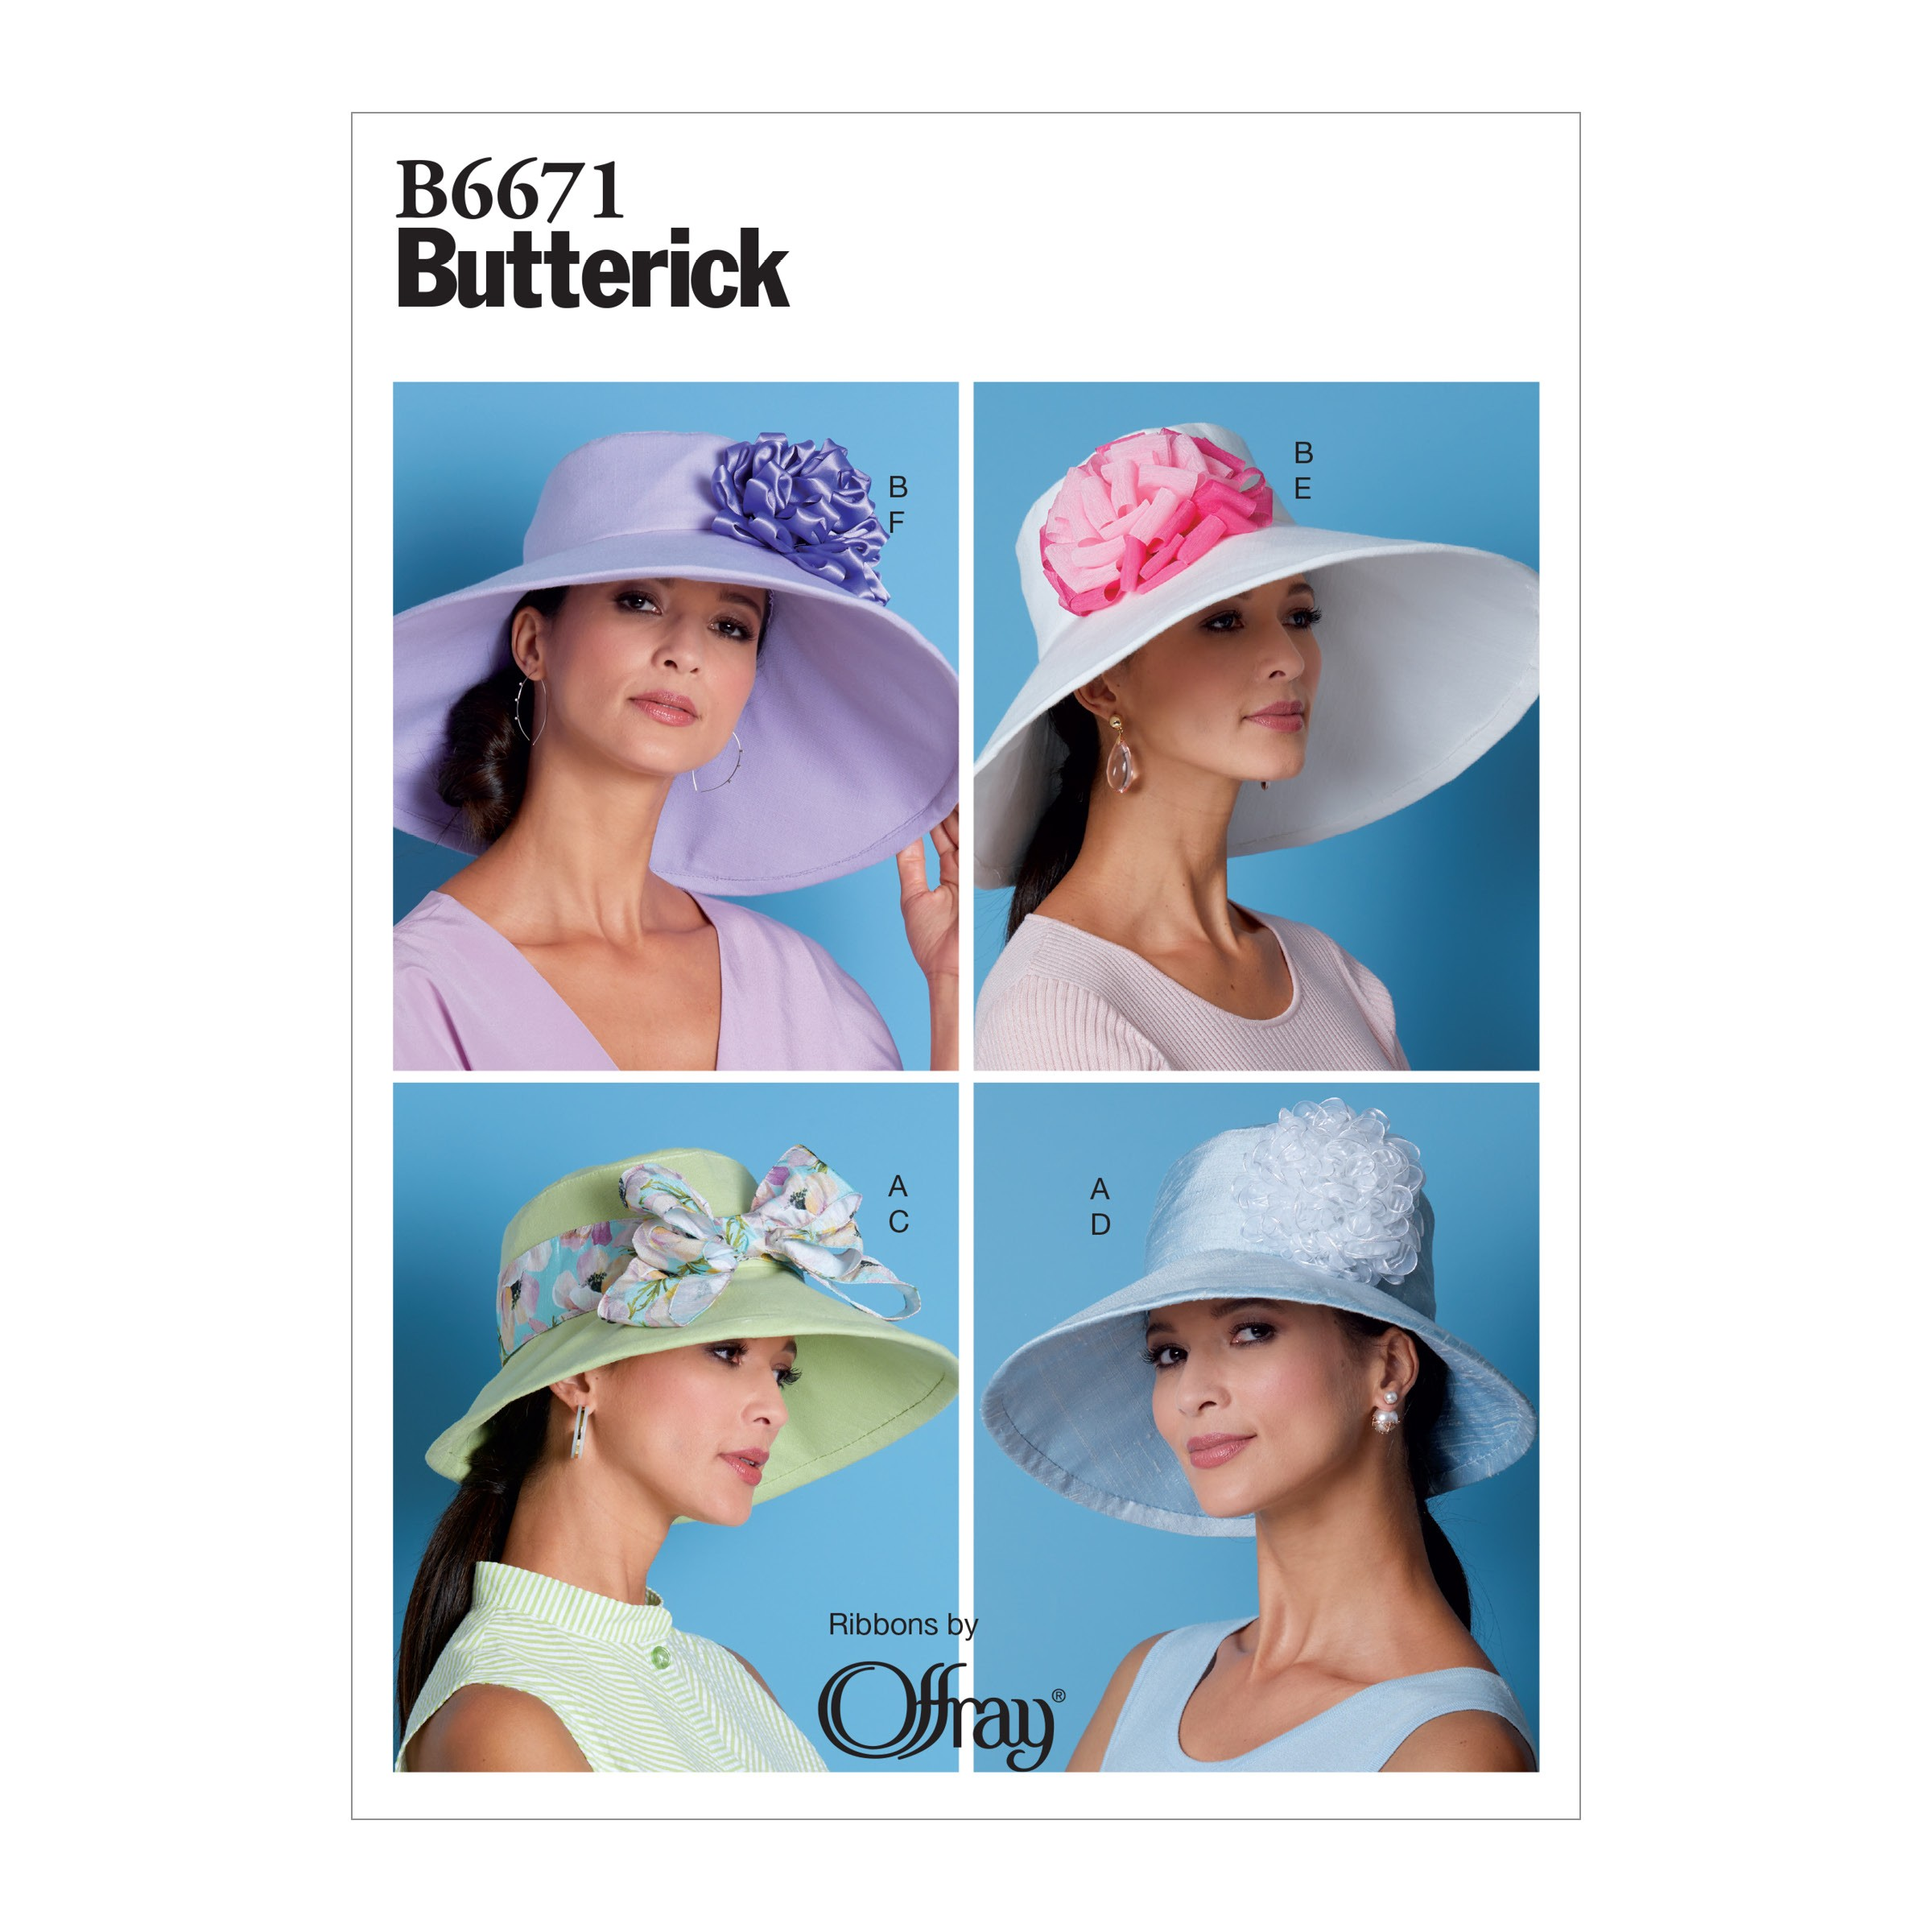 Butterick Sewing Pattern 6671 Misses' Wide Brim Hat